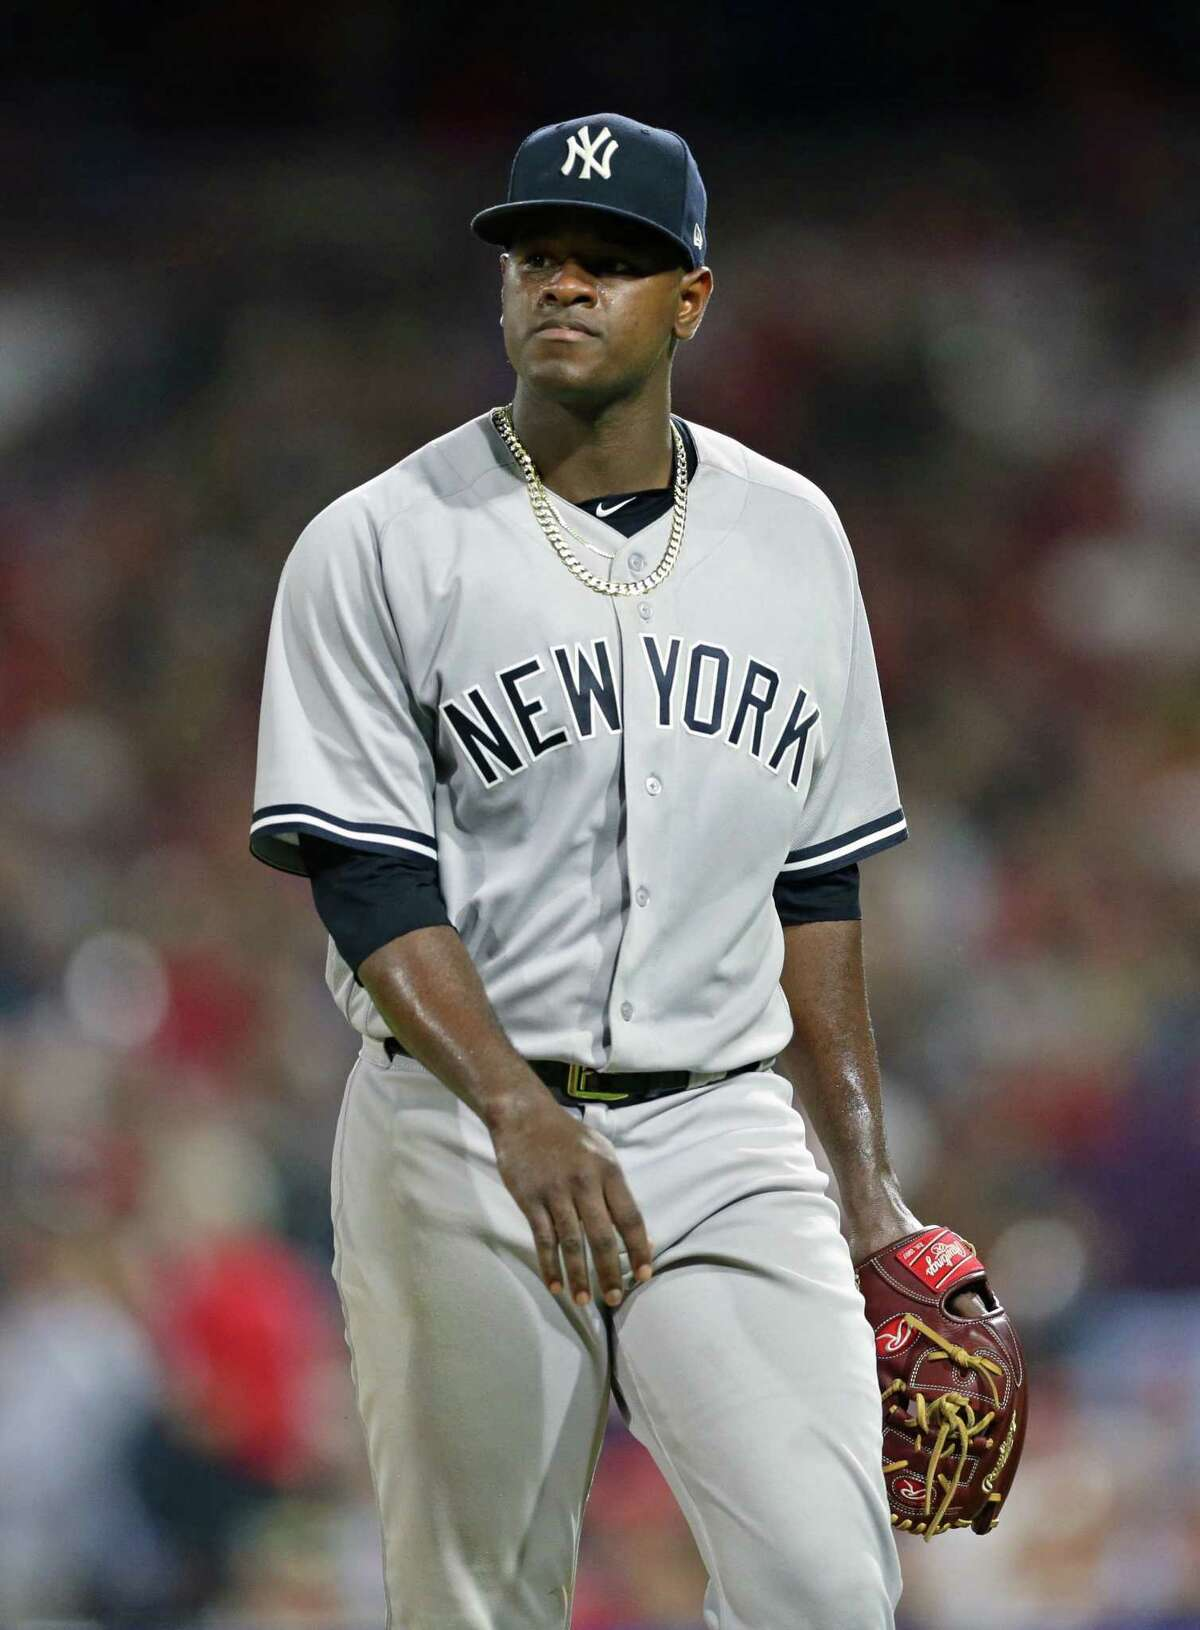 PHILADELPHIA, PA - JUNE 26: Starting pitcher Luis Severino #40 of the New York Yankees walks off the mound after finishing the seventh inning during a game against the Philadelphia Phillies at Citizens Bank Park on June 26, 2018 in Philadelphia, Pennsylvania. The Yankees won 6-0. (Photo by Hunter Martin/Getty Images)